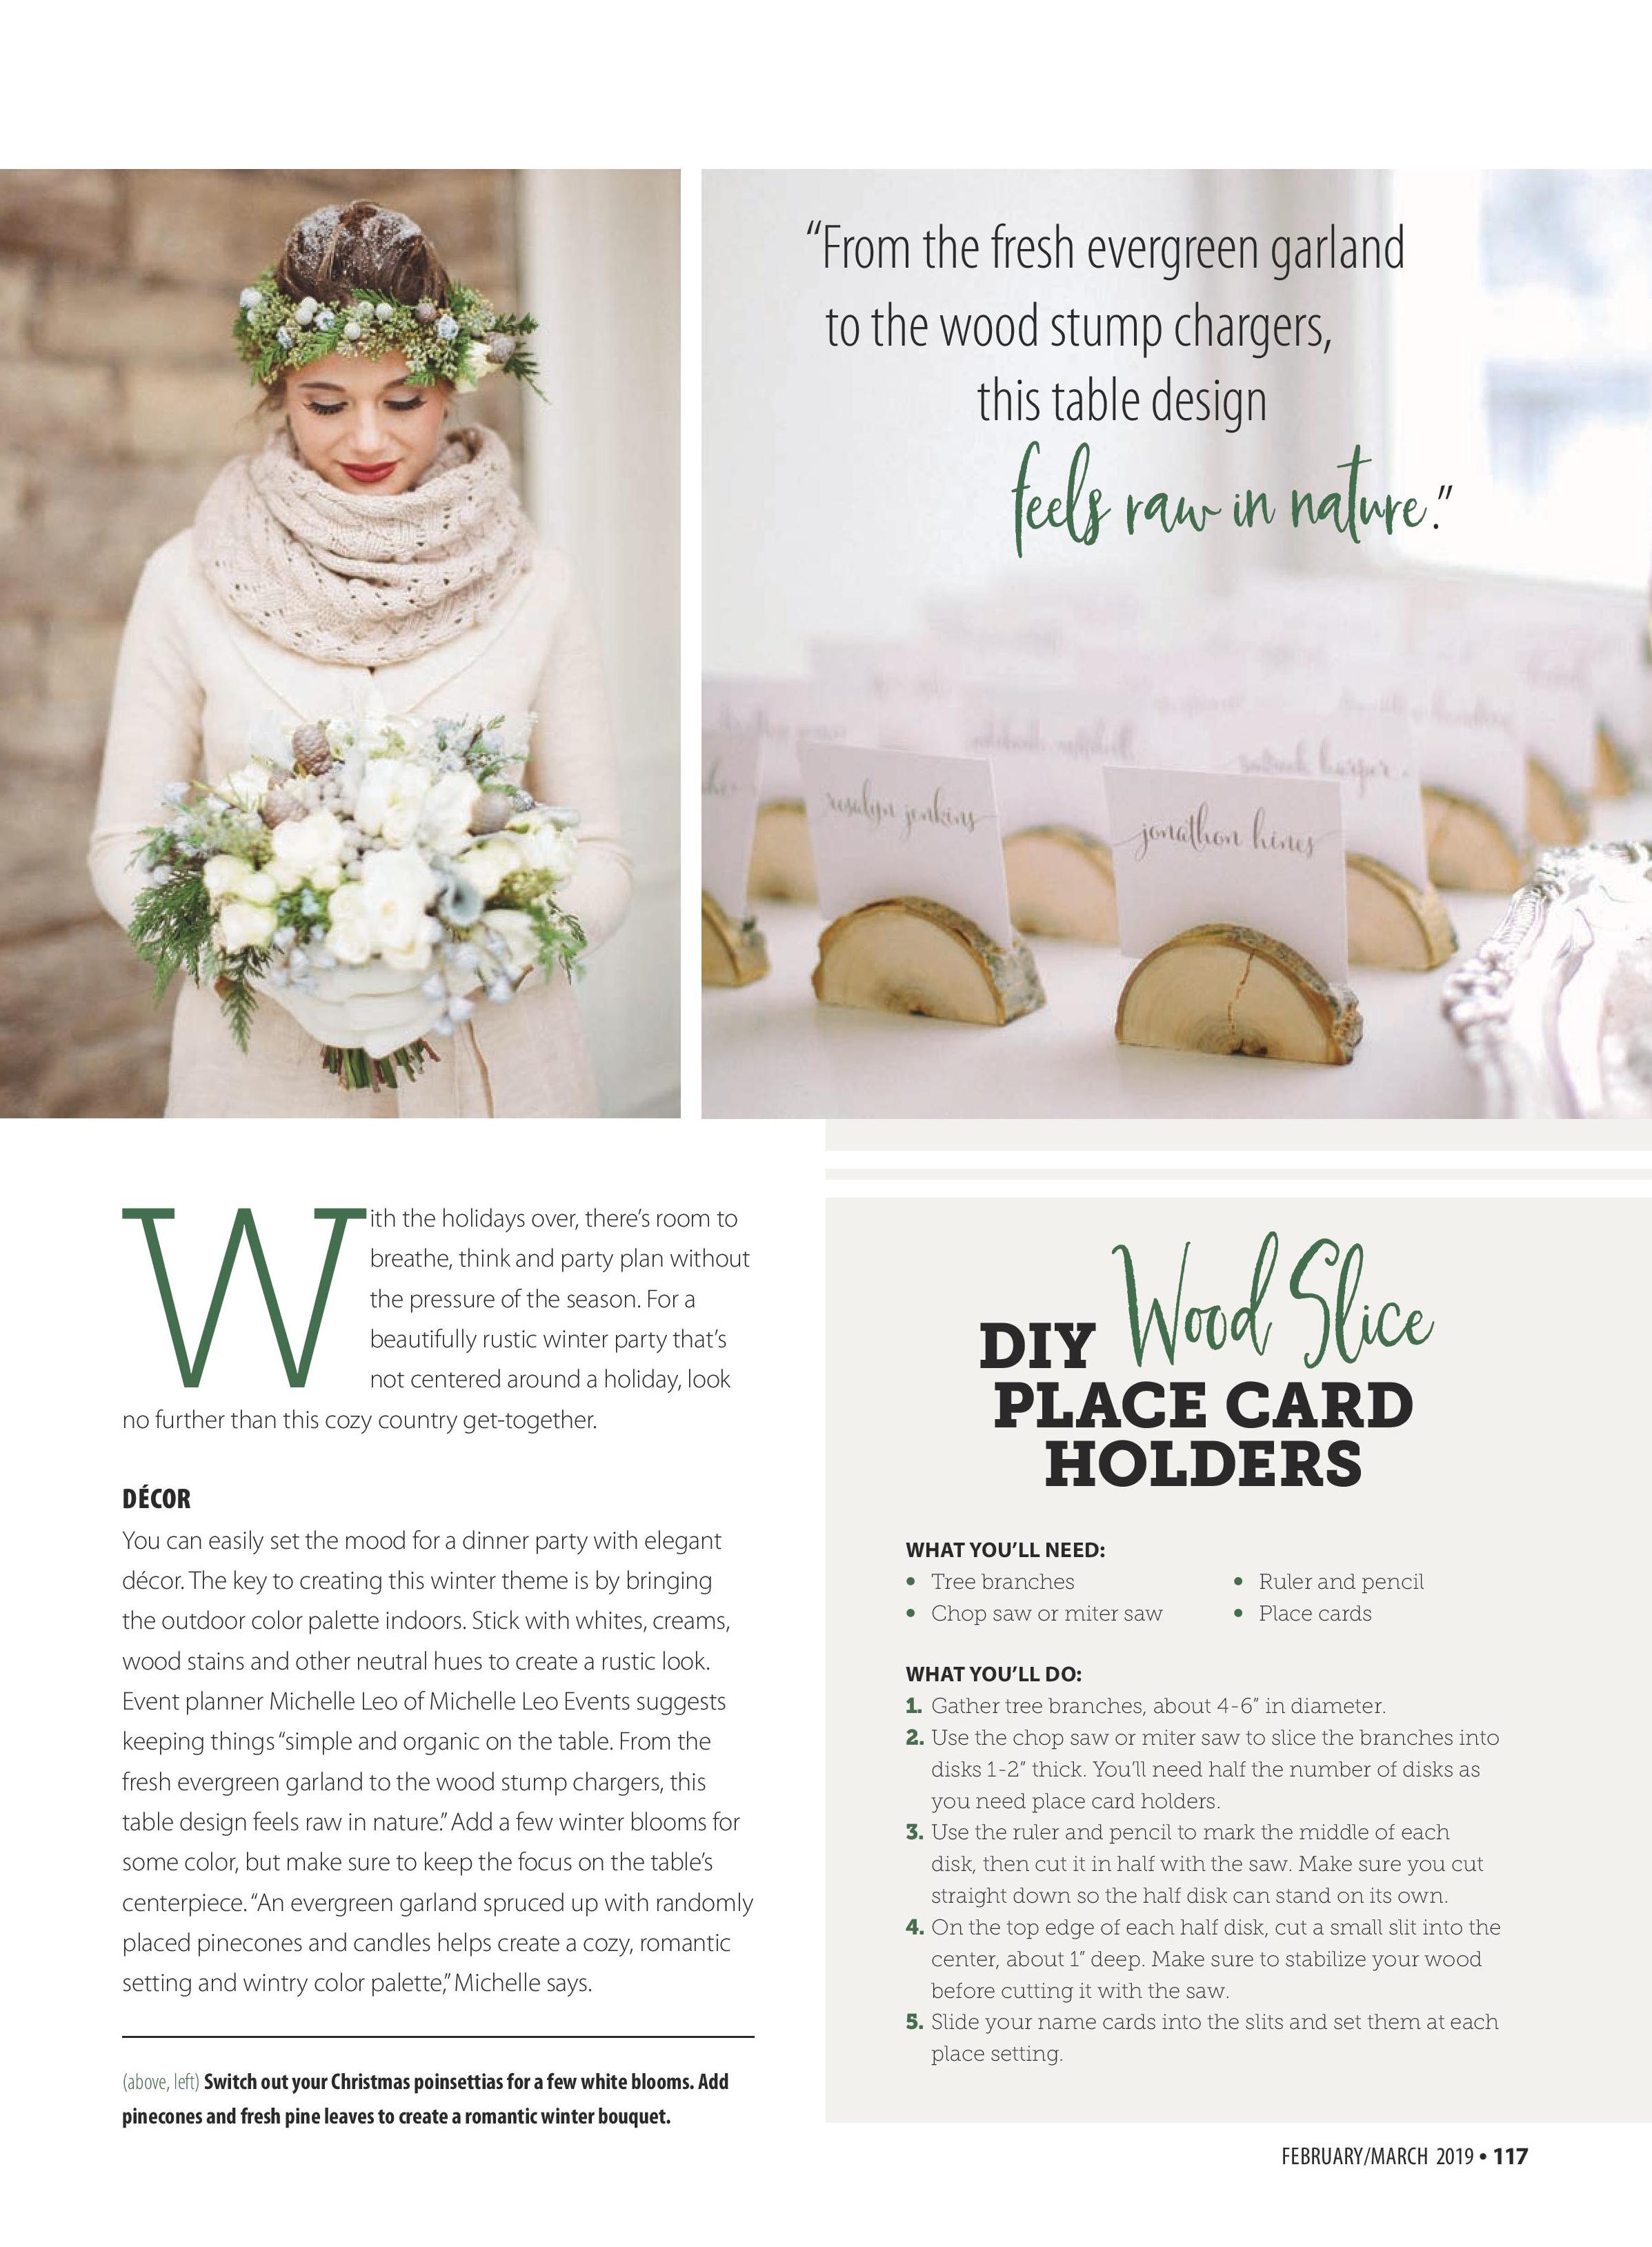 American Farmhouse Style Magazine | Rustic Winter Wedding Inspiration | Utah Event Planner and Designer | Michelle Leo Events | Jacque Lynn Photography